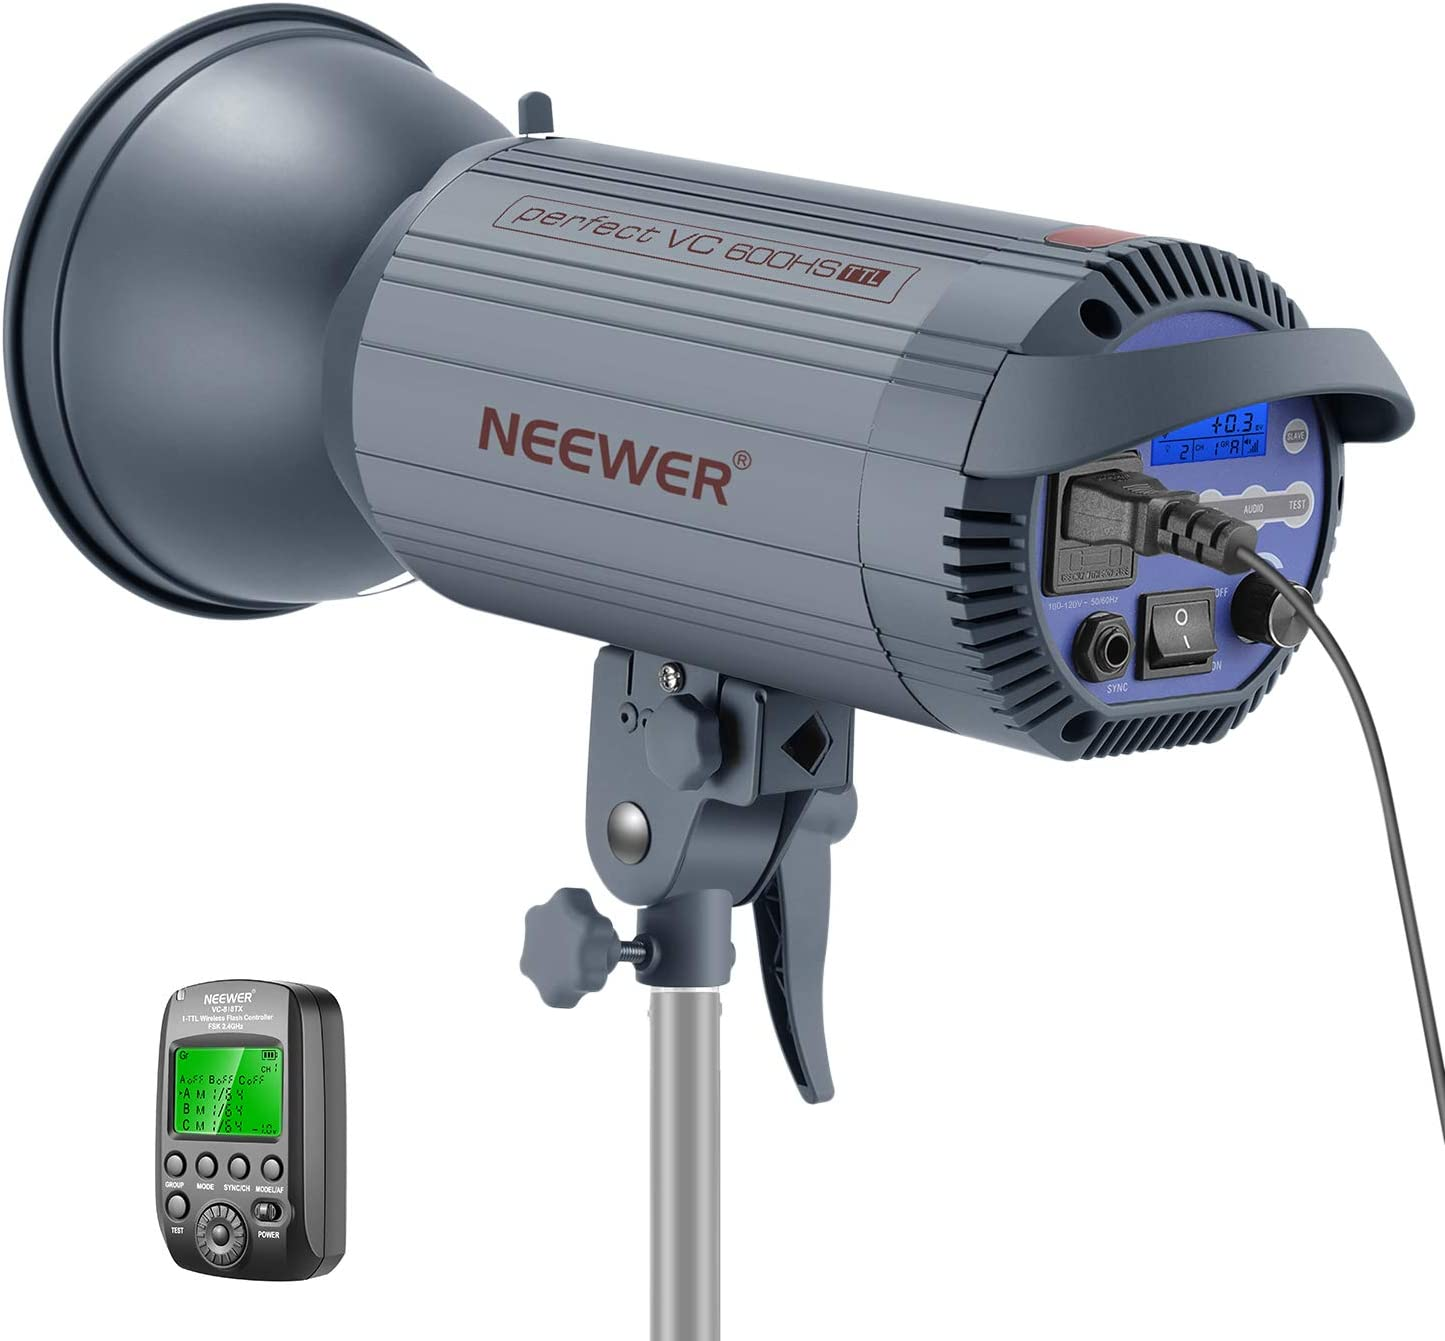 Neewer 600W TTL HSS 1/8000s GN86 Studio Strobe Flash Light Monolight with 2.4G Wireless Trigger for Nikon DSLR Cameras,Recycle 0.6 Sec, Bowens Mount for Indoor Studio Portrait Photography(VC 600HS)